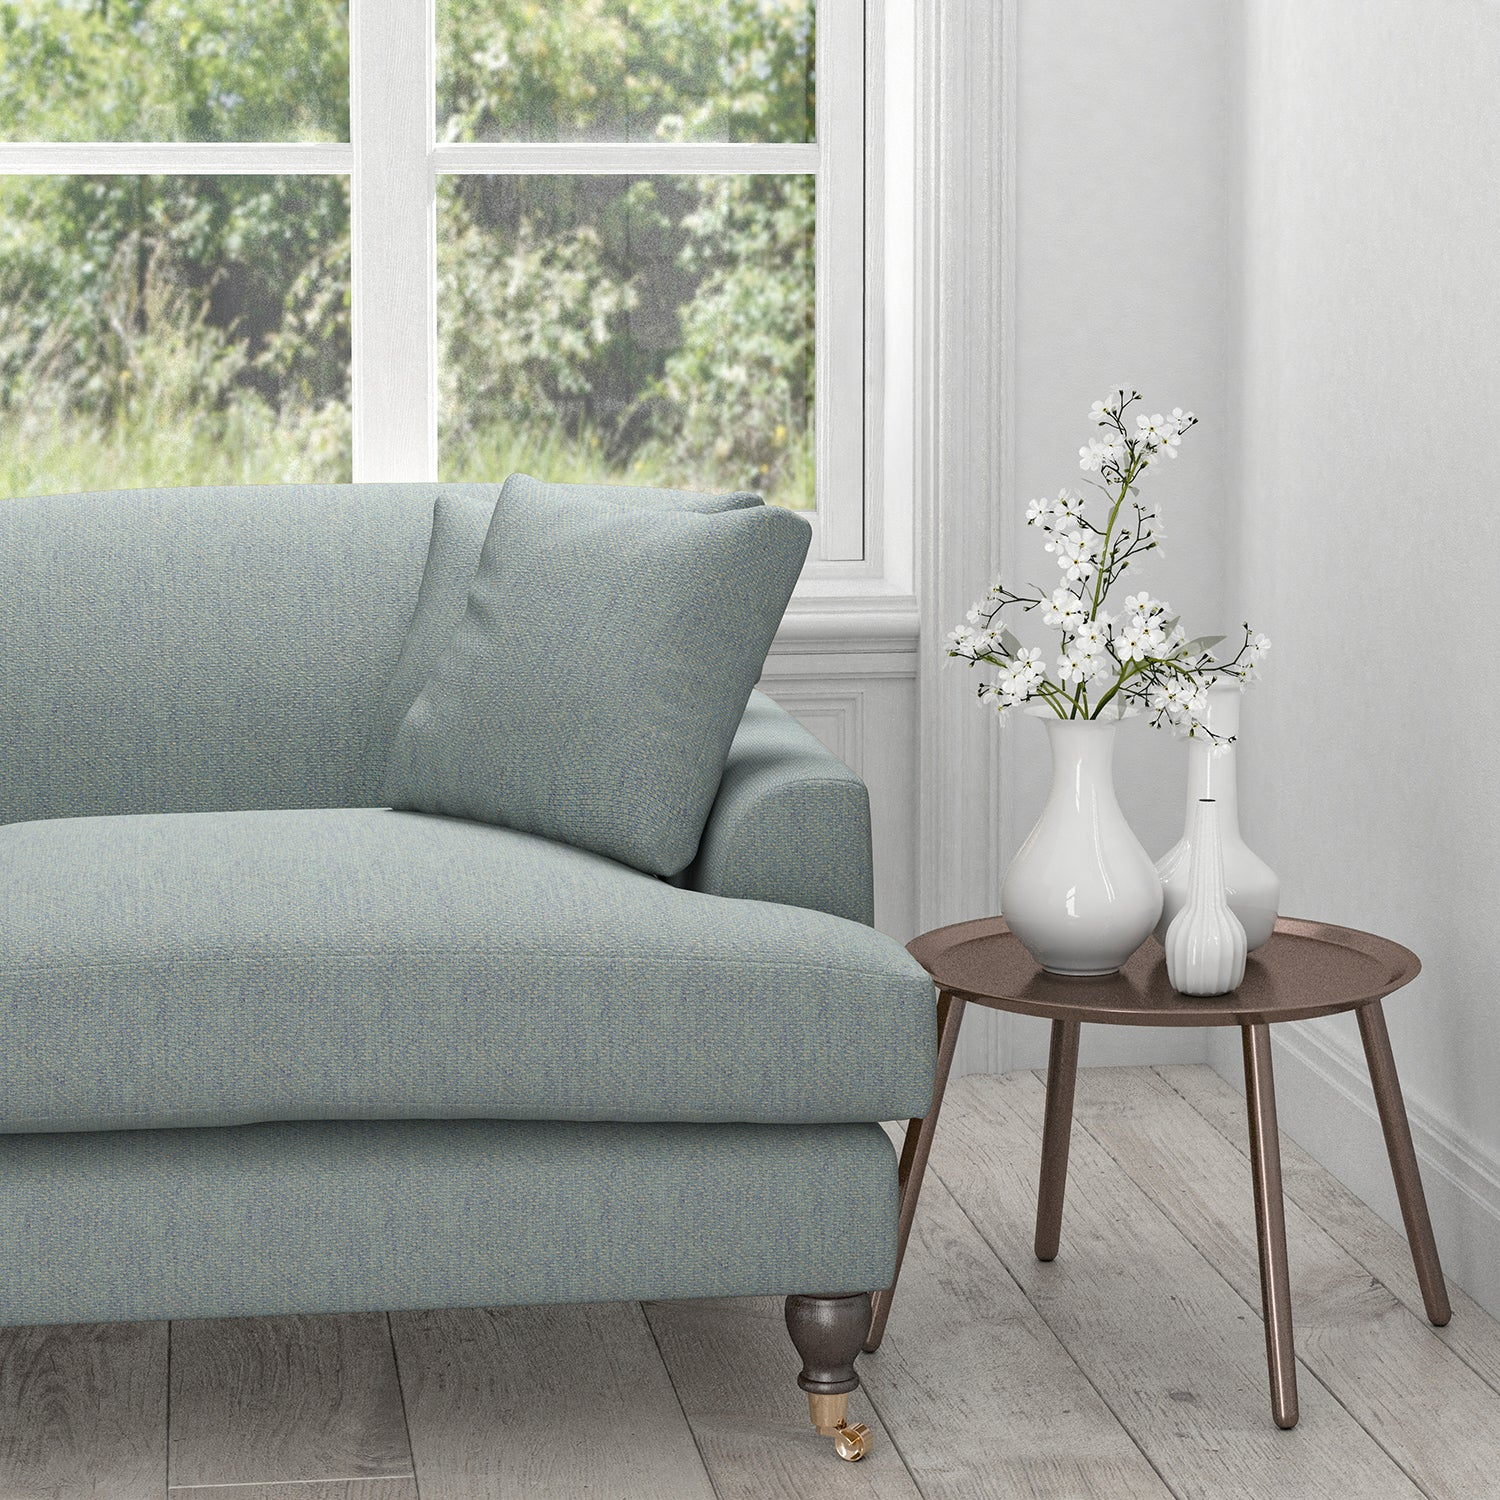 Sofa upholstered in a light blue fabric with a neutral woven design